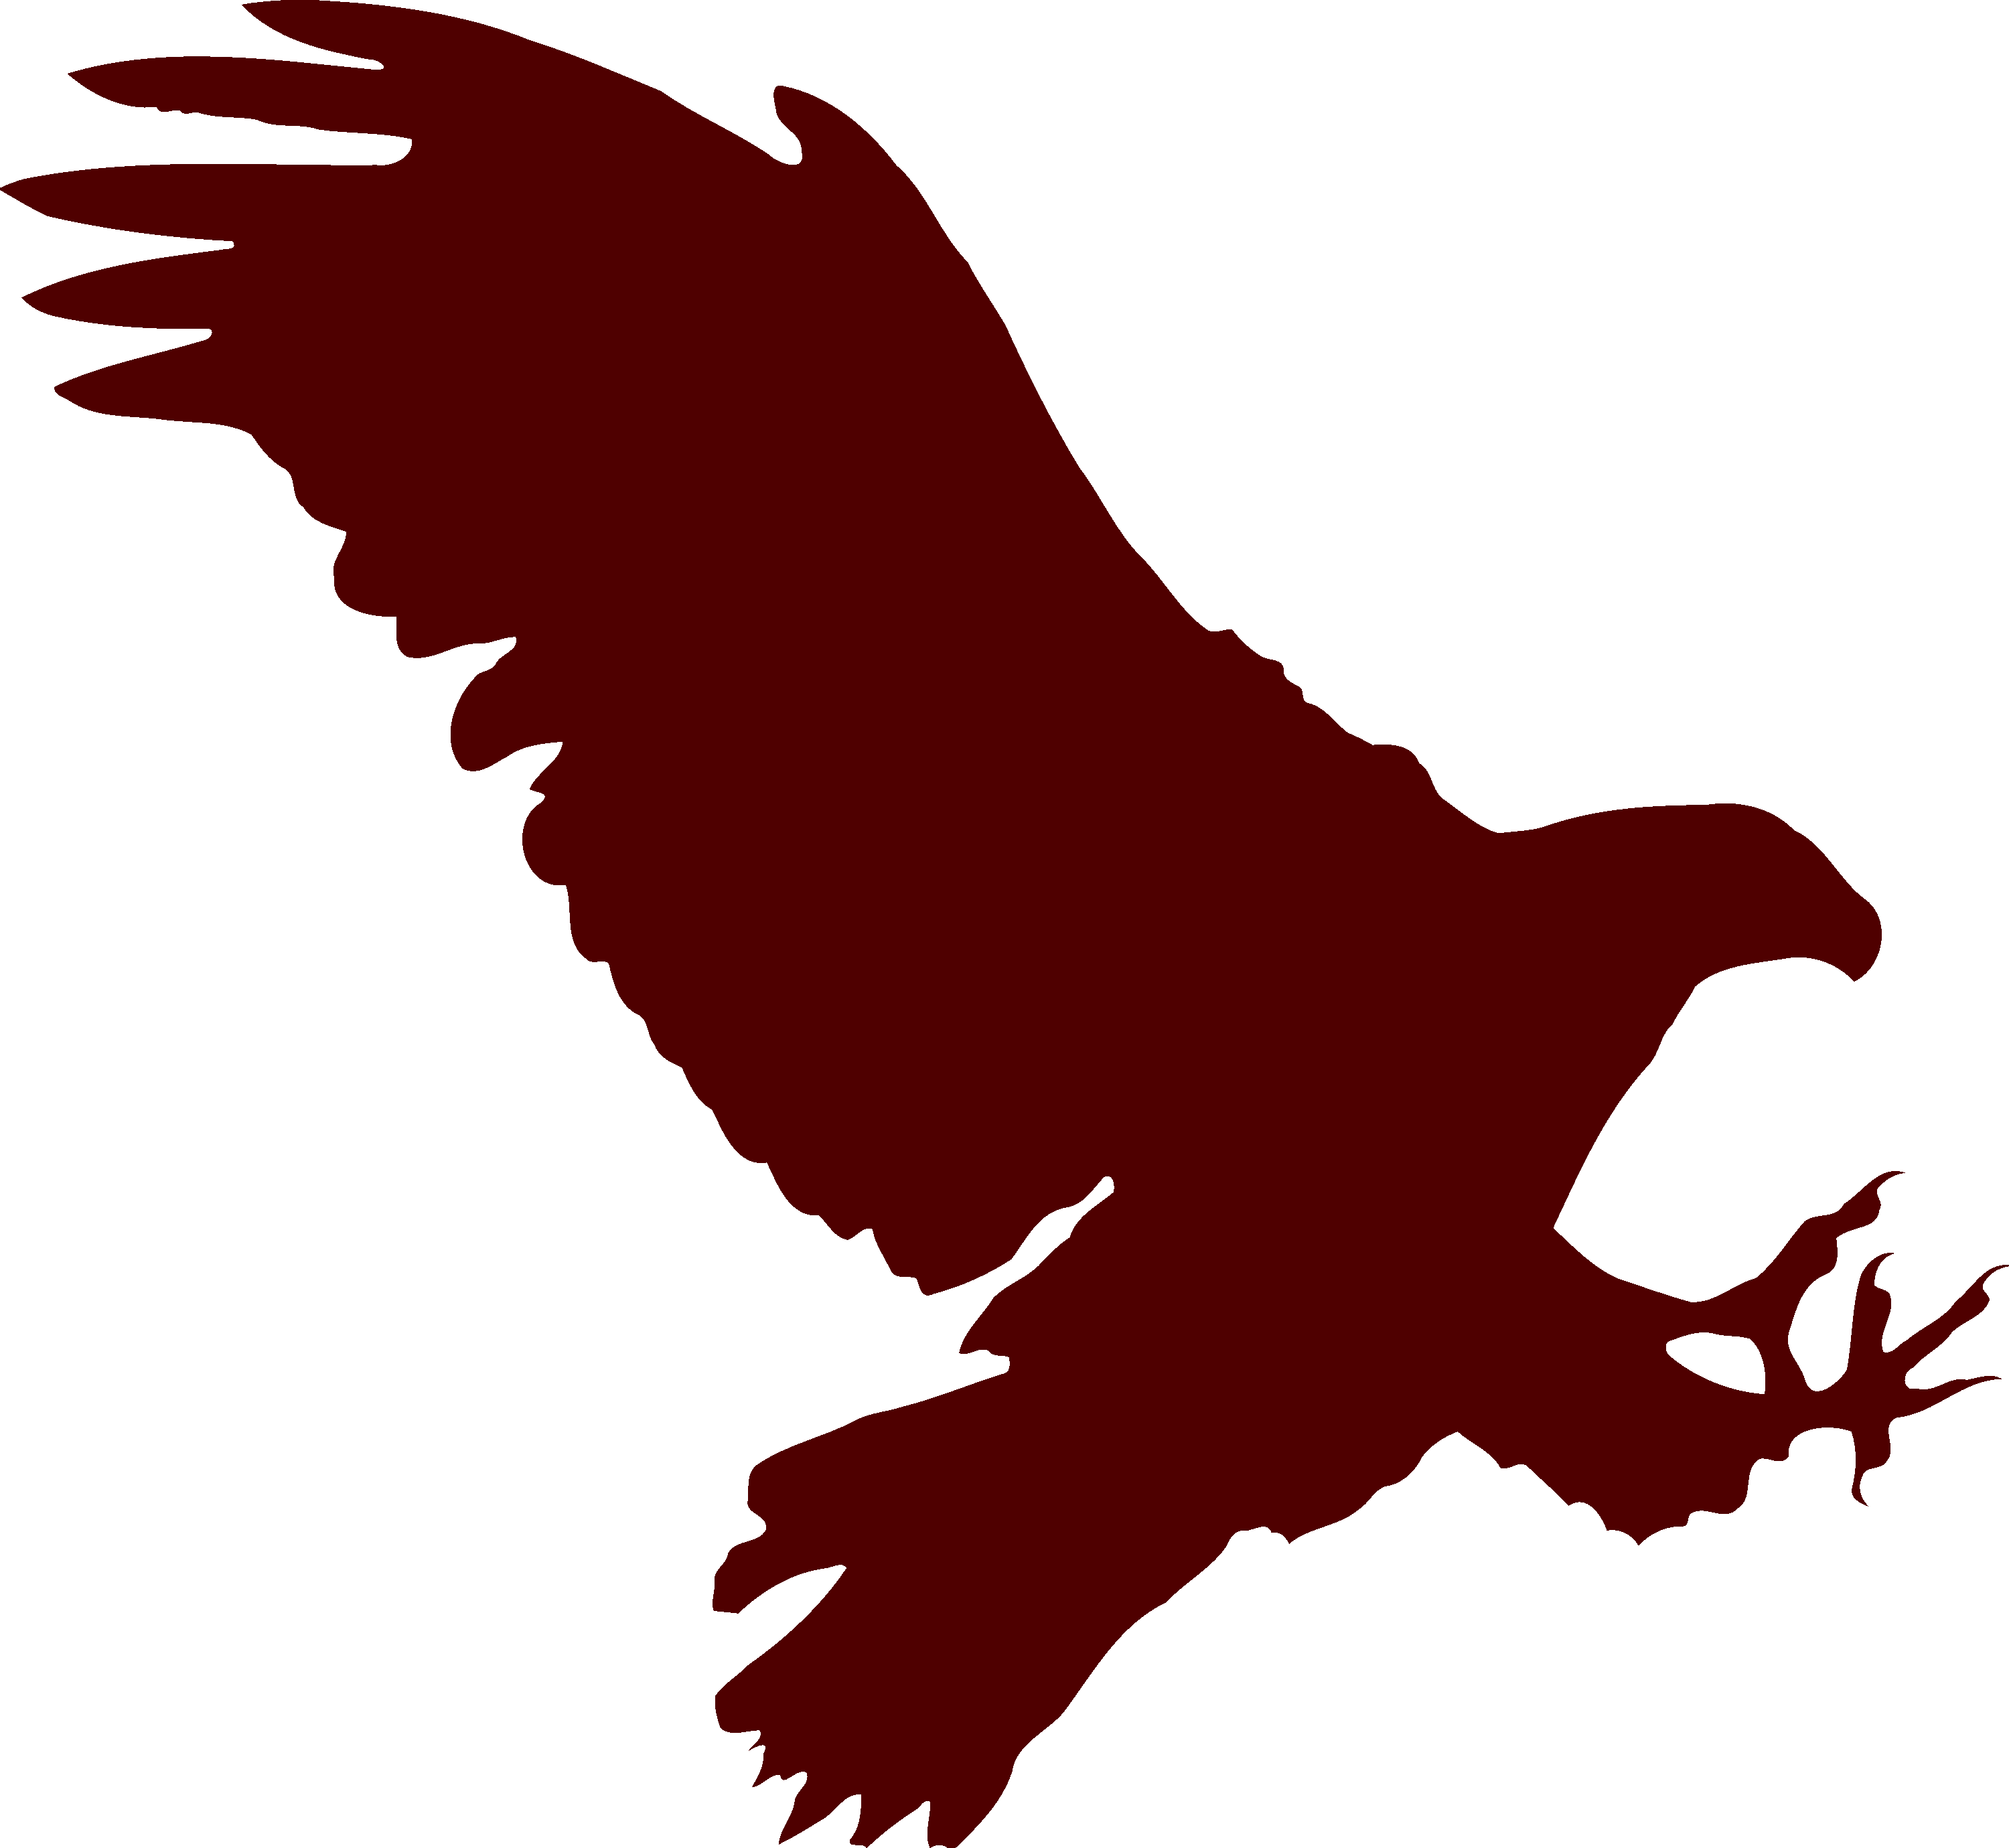 Eagle clipart red. Flying silhouette image id